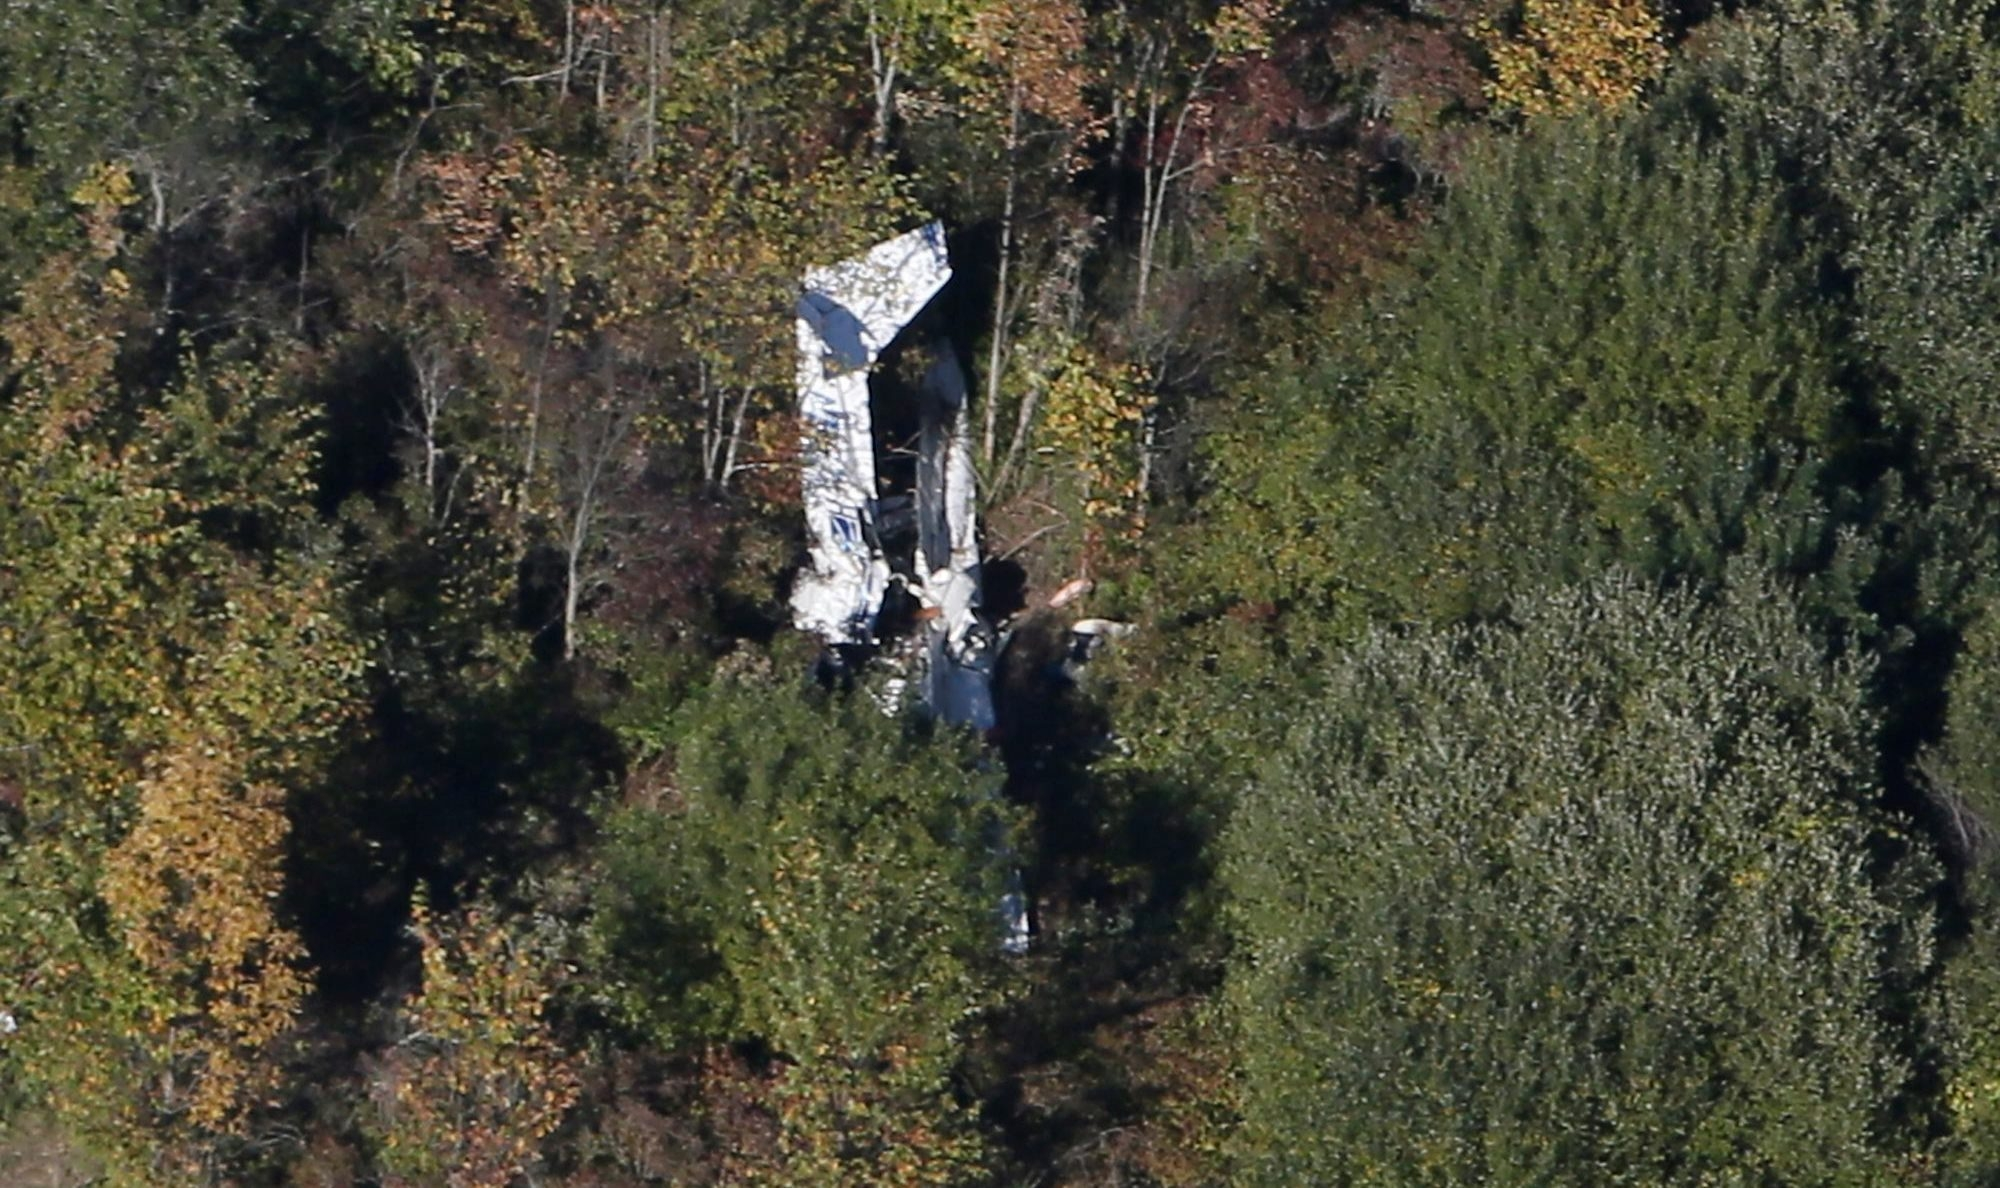 The wreckage of the small plane in which pilot Anthony Mercurio, 78, and 14-year-old James Metz died after a collision with a smaller experimental aircraft on Sept. 27, 2014. (John Hickey/Buffalo News)